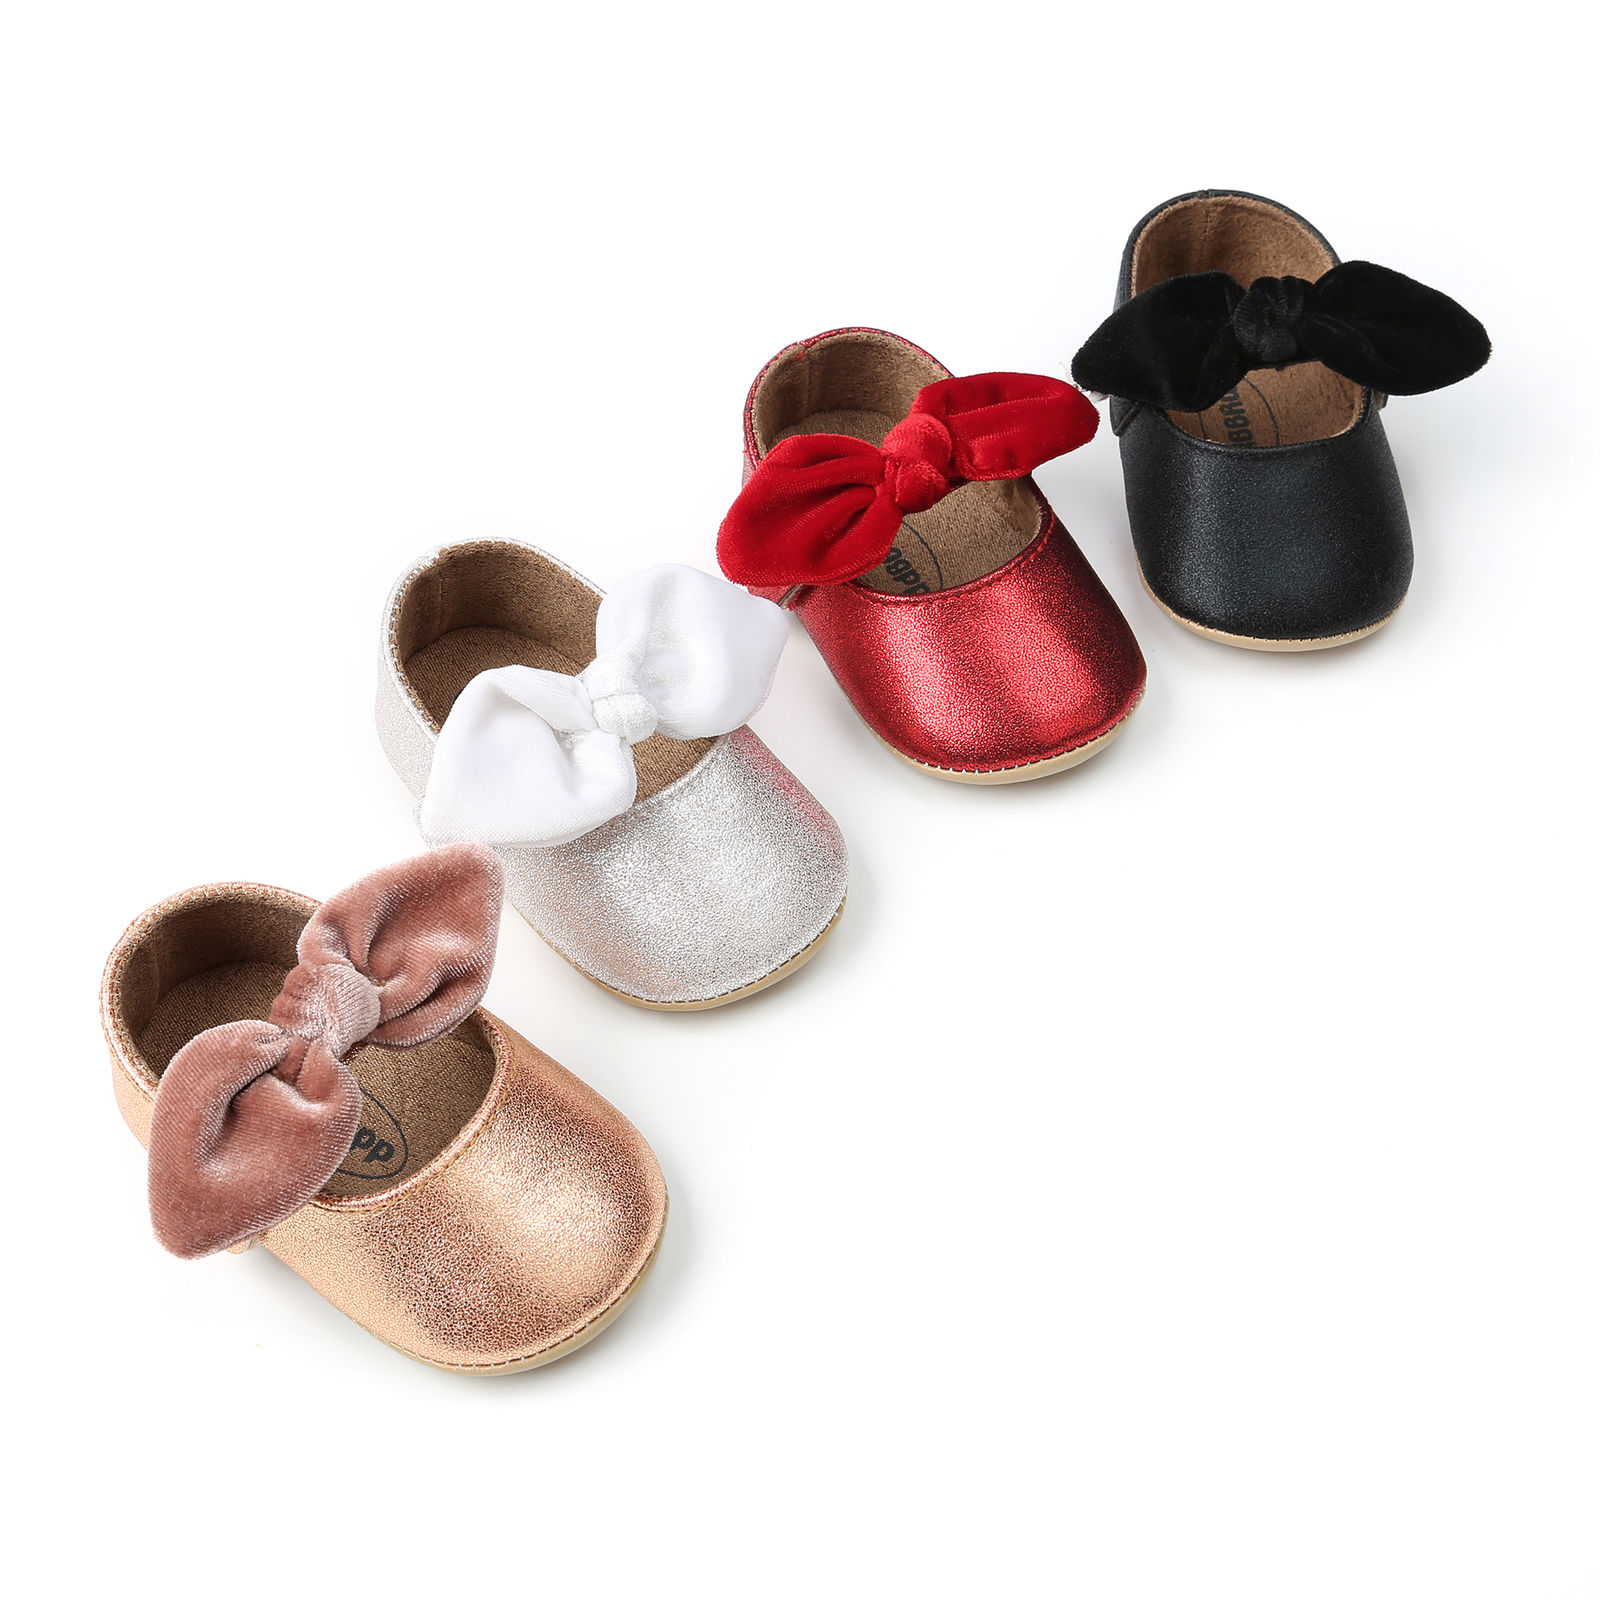 0-18m-pu-leather-baby-girl-shoes-moccasins-moccs-shoes-bow-fringe-soft-soled-non-slip-footwear-crib-shoes